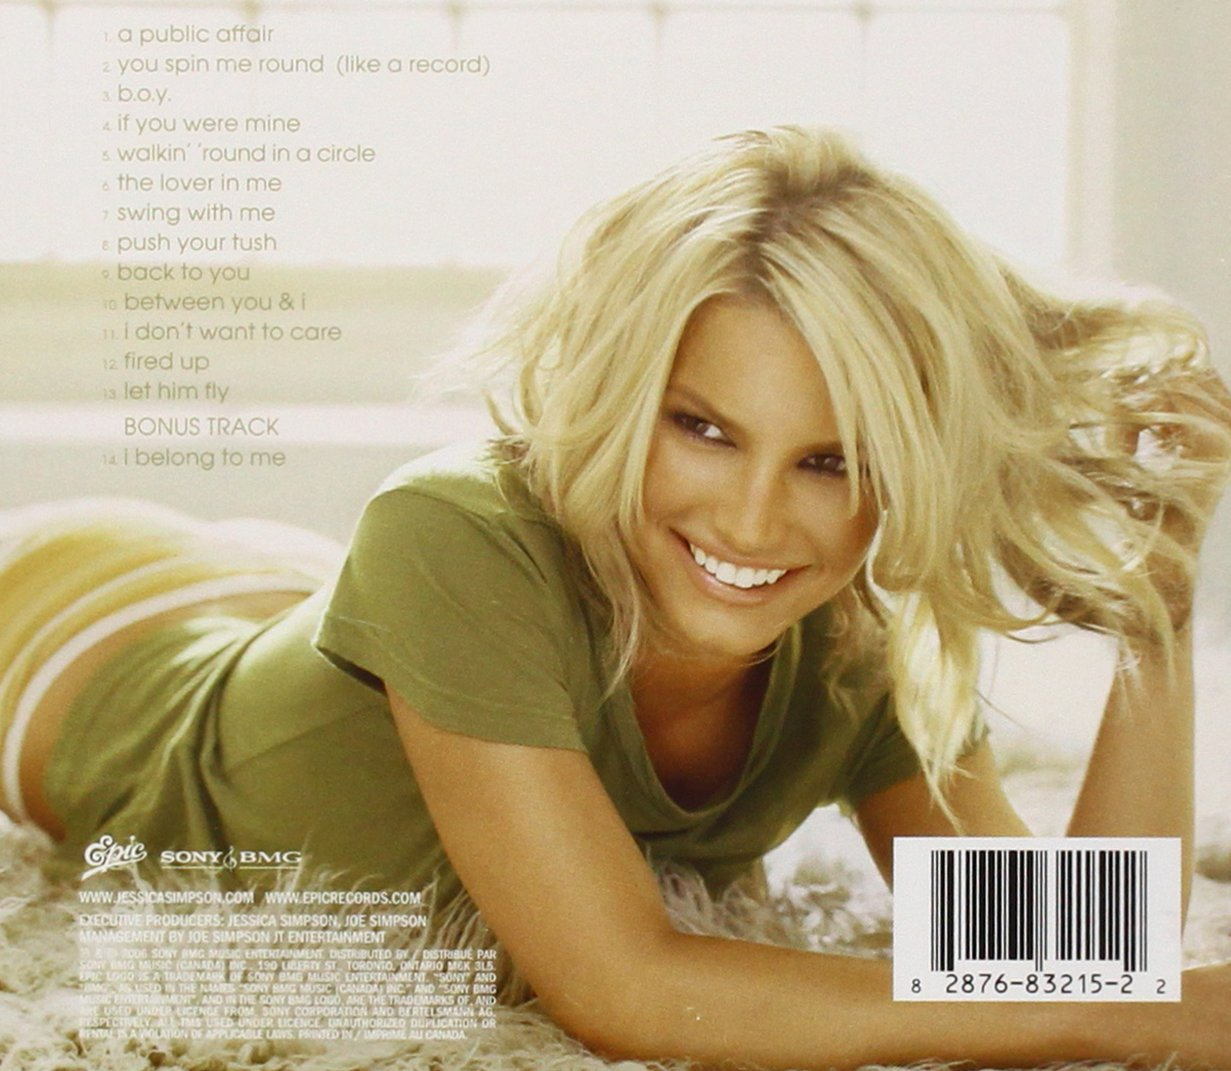 JESSICA SIMPSON - Public Affair - Amazon.com Music